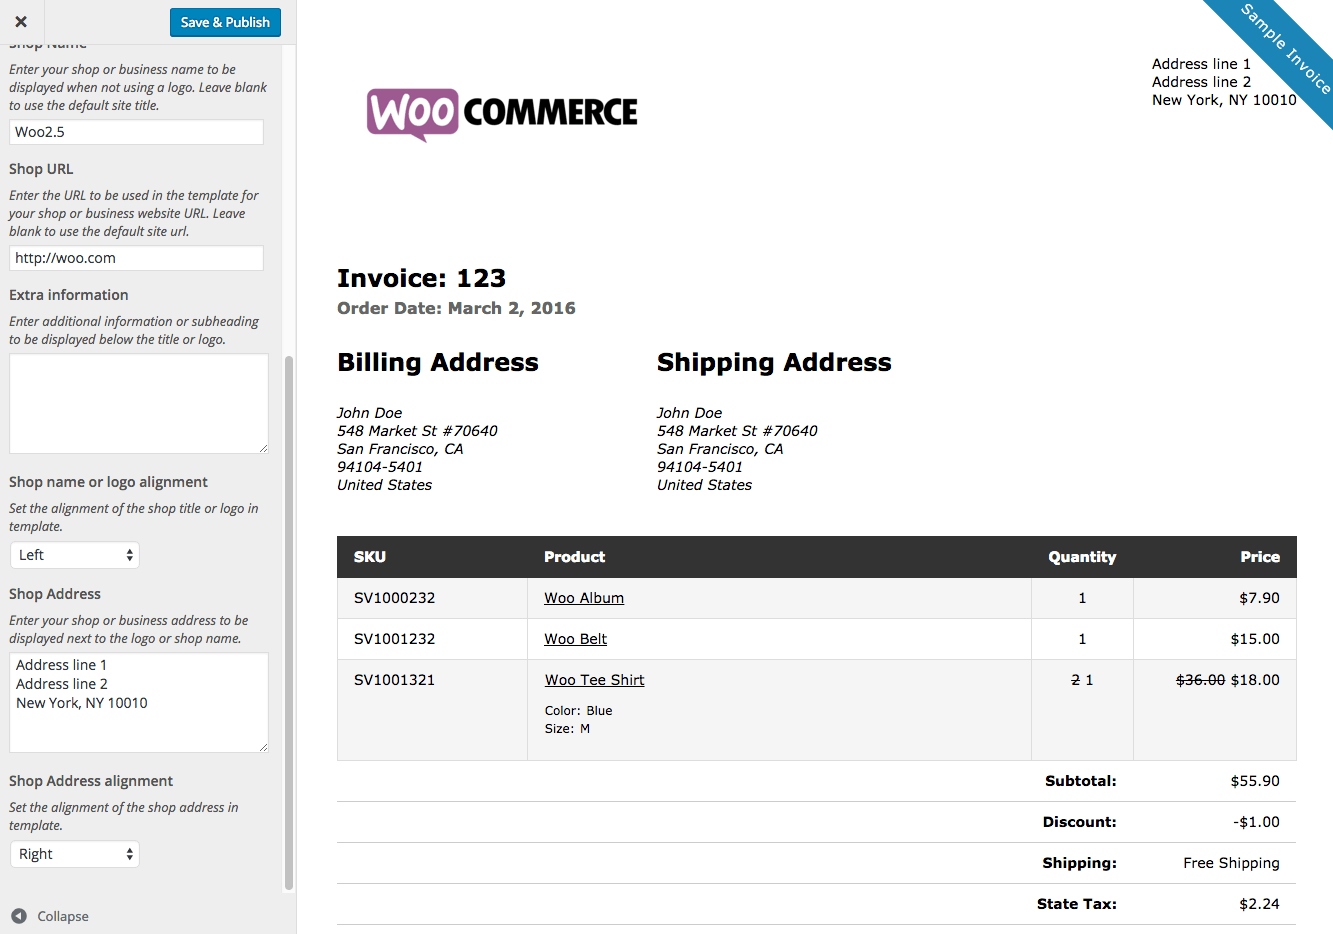 Occupyhistoryus  Marvellous Woocommerce Print Invoices Amp Packing Lists  Woocommerce Docs With Entrancing Woocommerce Print Invoices  Packing Lists Customizer With Agreeable Invoice Number Sample Also Ato Tax Invoices In Addition Template Of A Invoice And Free Text Invoice As Well As What Is An Invoice In Business Additionally Small Invoice Template From Docswoocommercecom With Occupyhistoryus  Entrancing Woocommerce Print Invoices Amp Packing Lists  Woocommerce Docs With Agreeable Woocommerce Print Invoices  Packing Lists Customizer And Marvellous Invoice Number Sample Also Ato Tax Invoices In Addition Template Of A Invoice From Docswoocommercecom